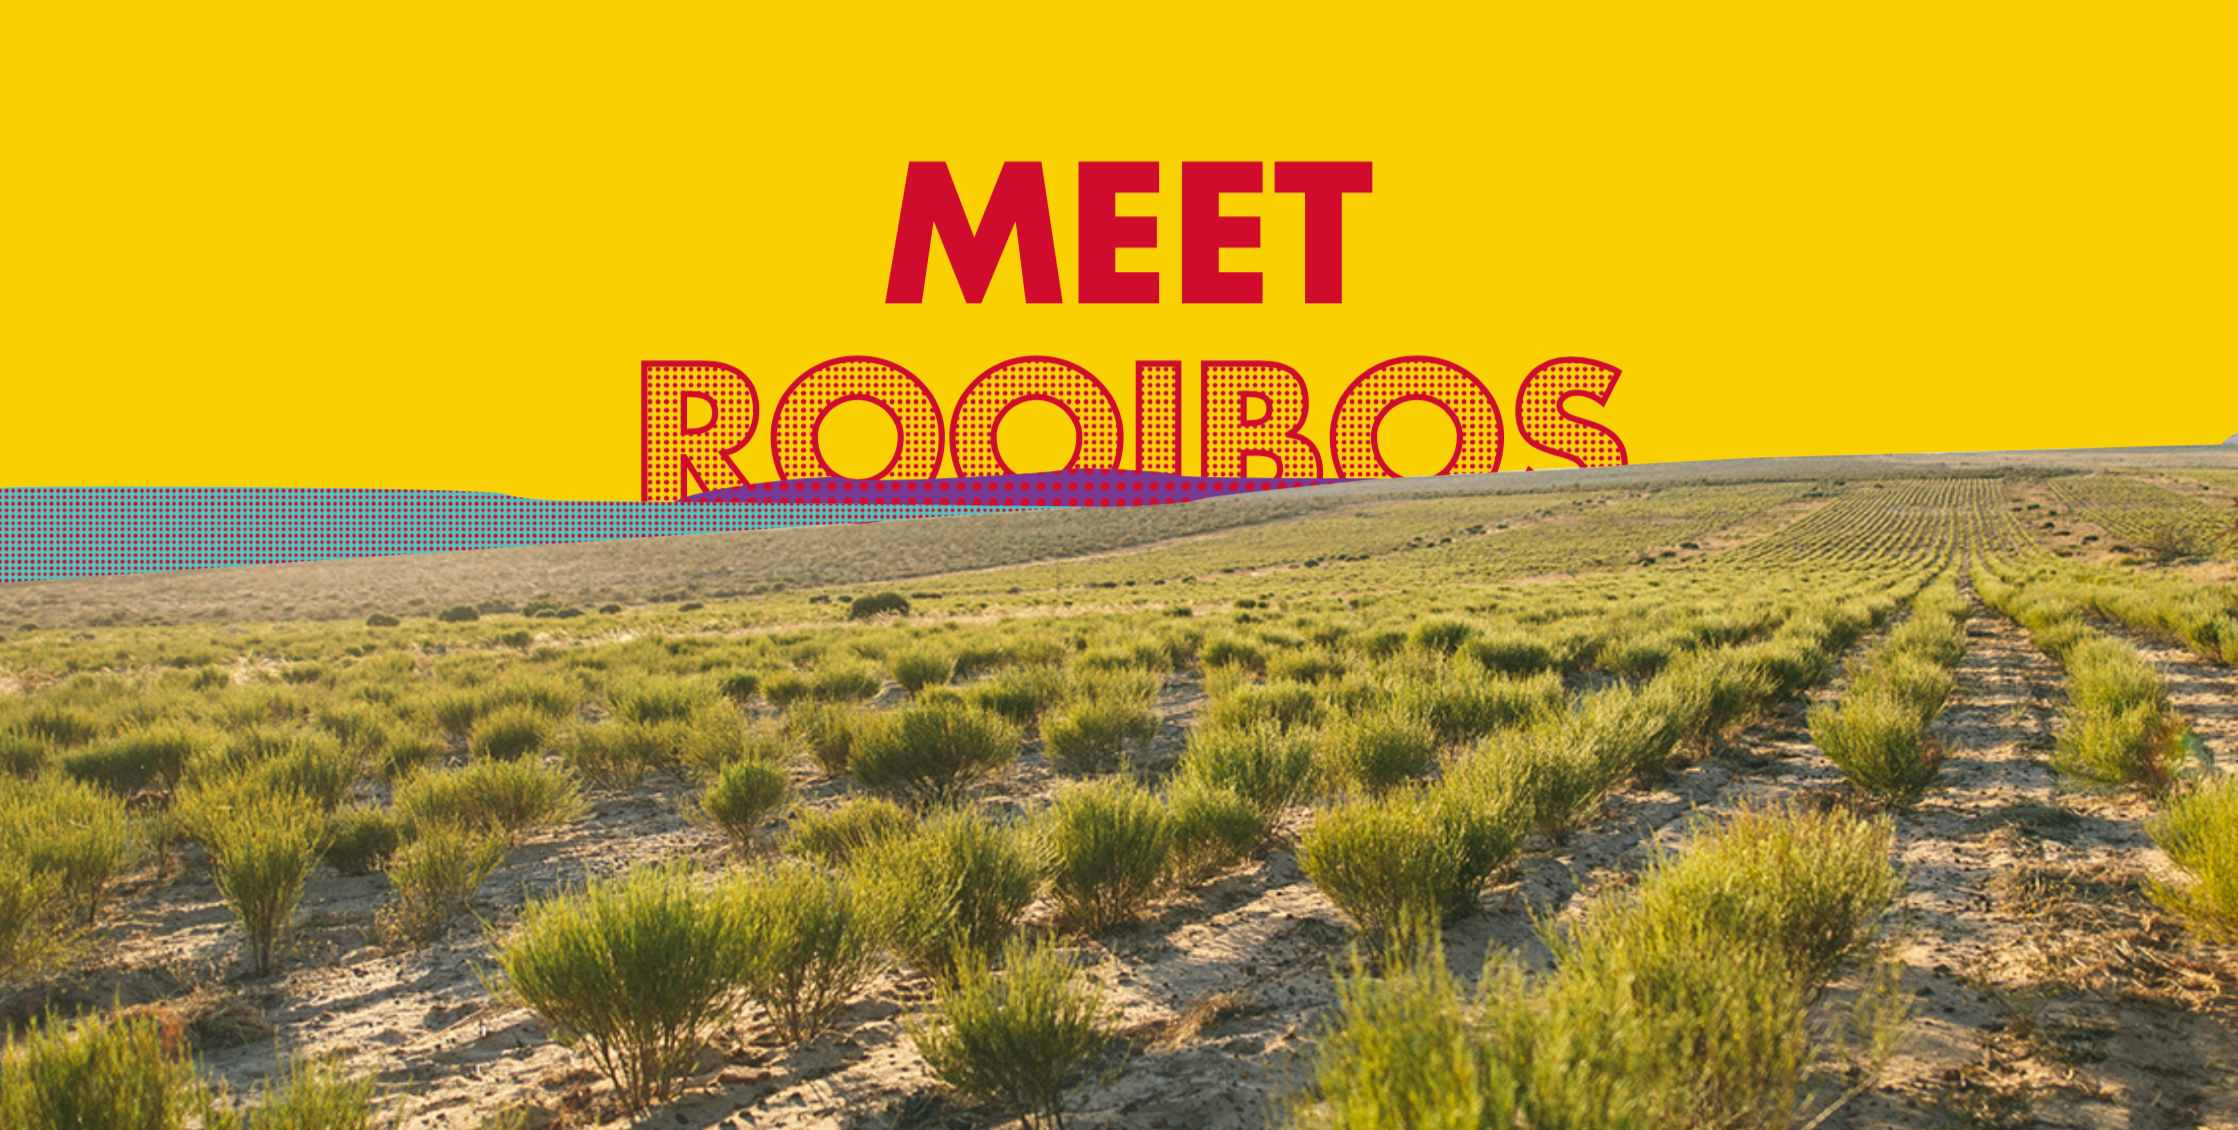 "<img src=""meetrooibos.png"" alt=""Cederberg Mountains where rooibos grows"">"